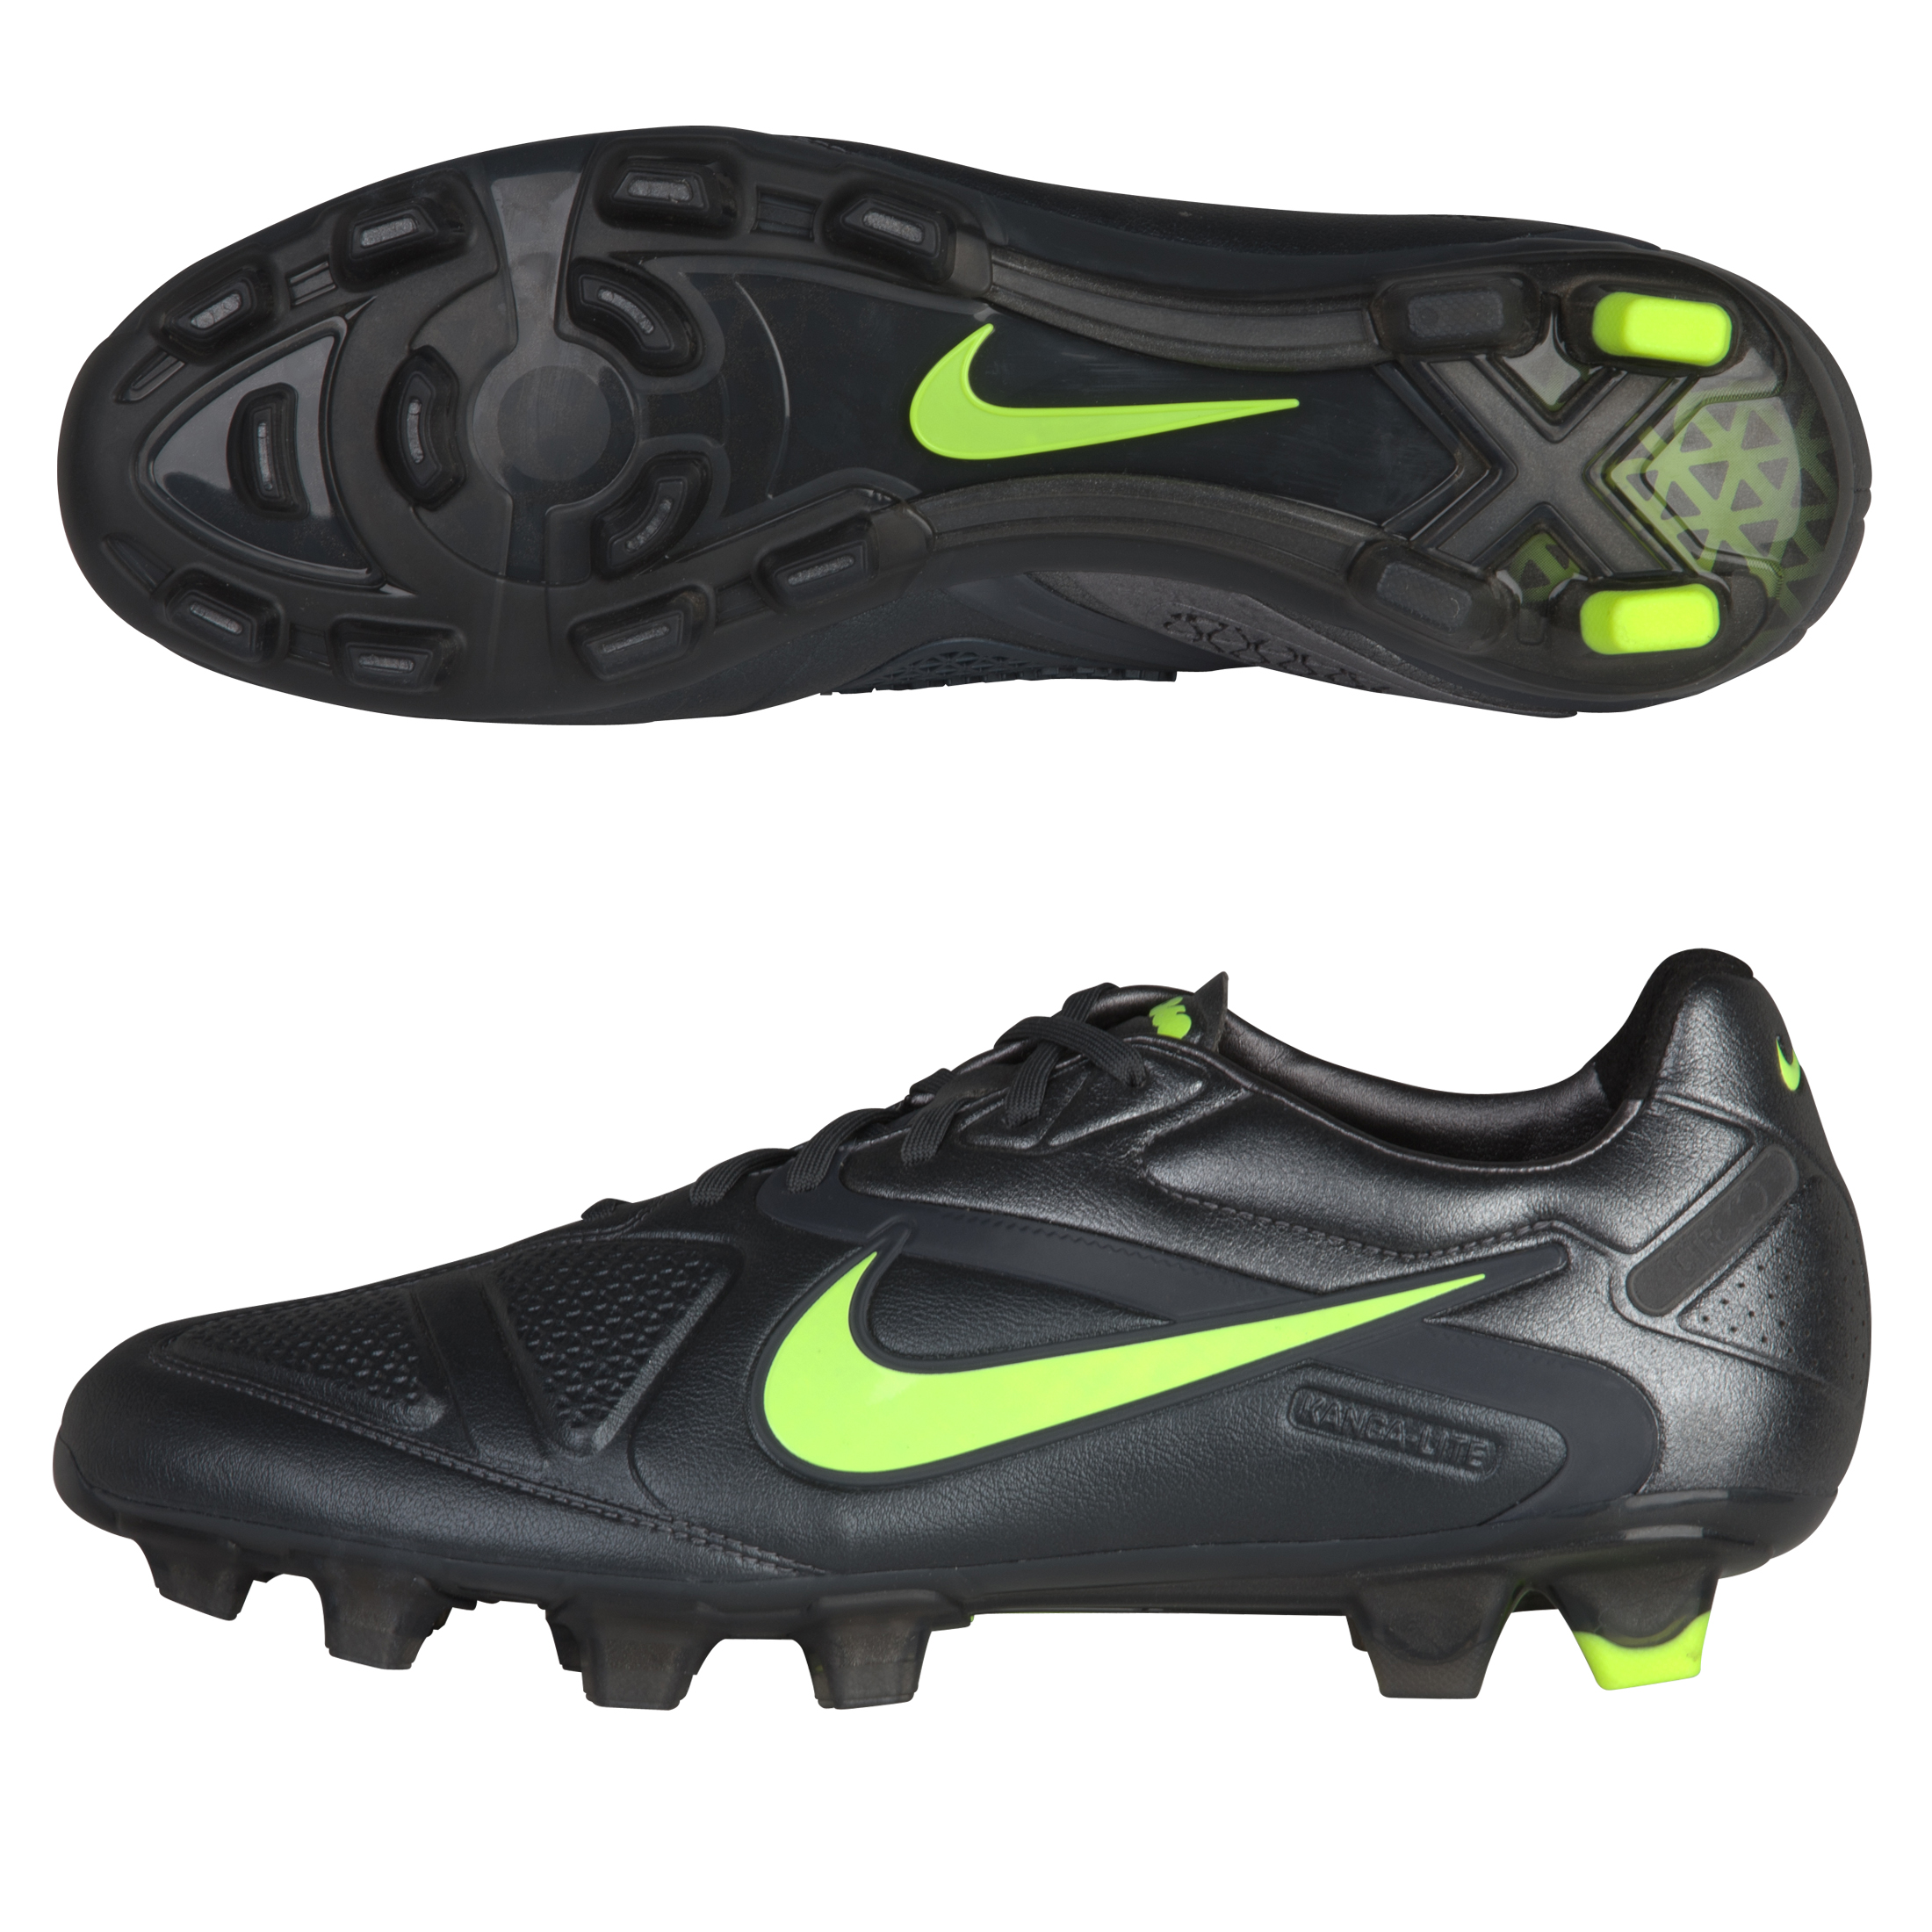 CTR360 Maestri II FG Dark Shadow/Volt/Metalic Dark Grey